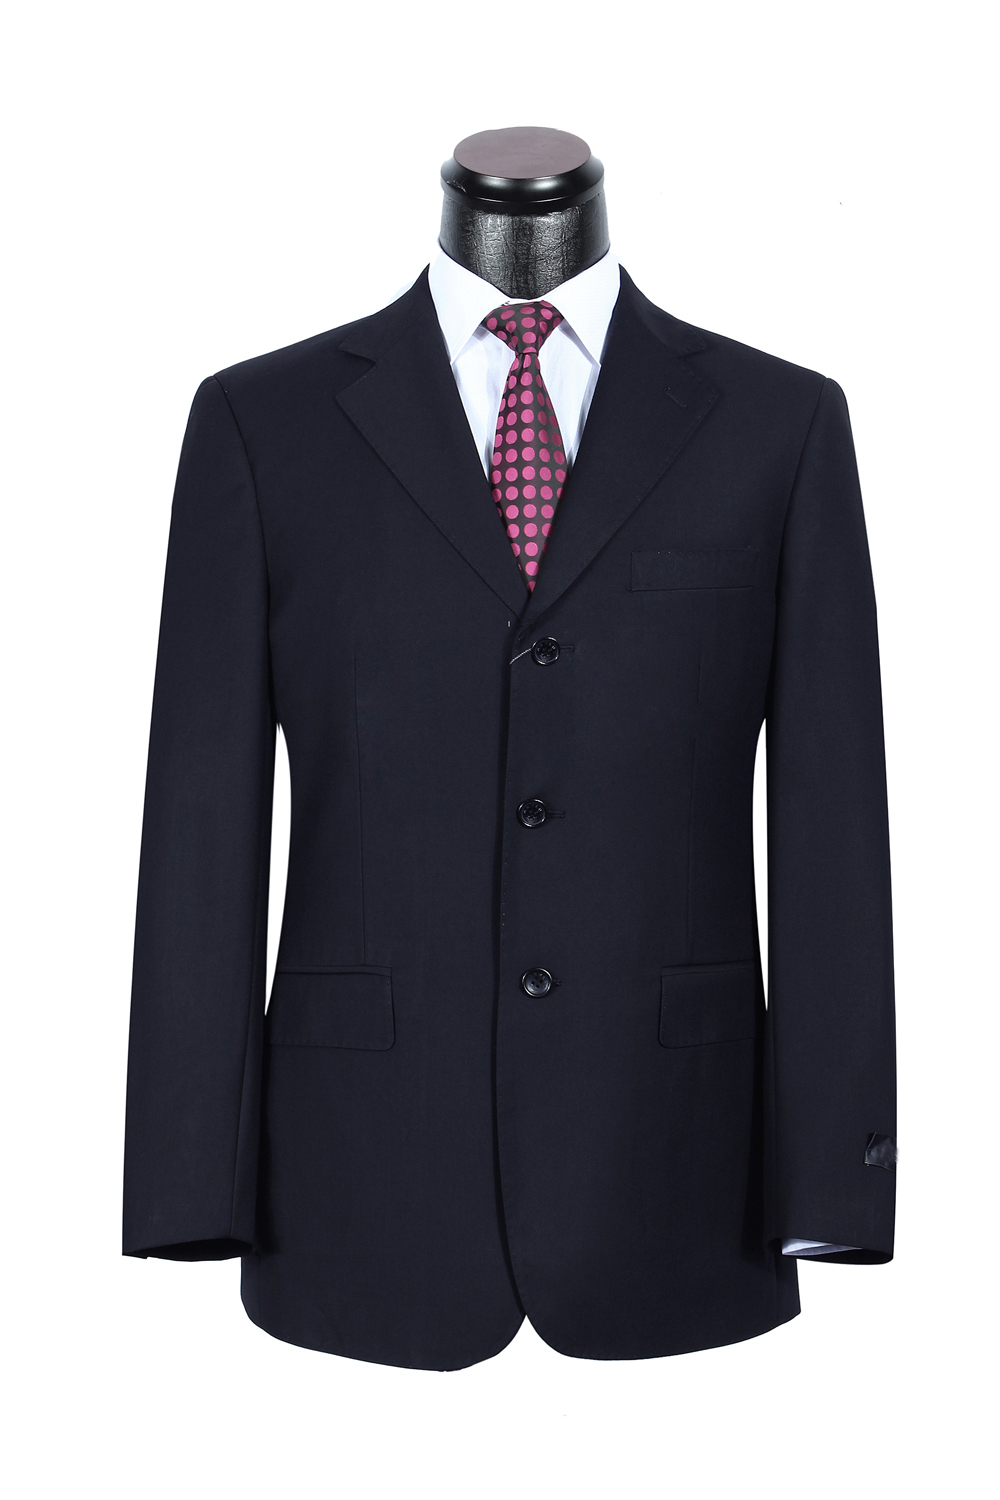 Cheap Expensive Suit Brands, find Expensive Suit Brands deals on ...